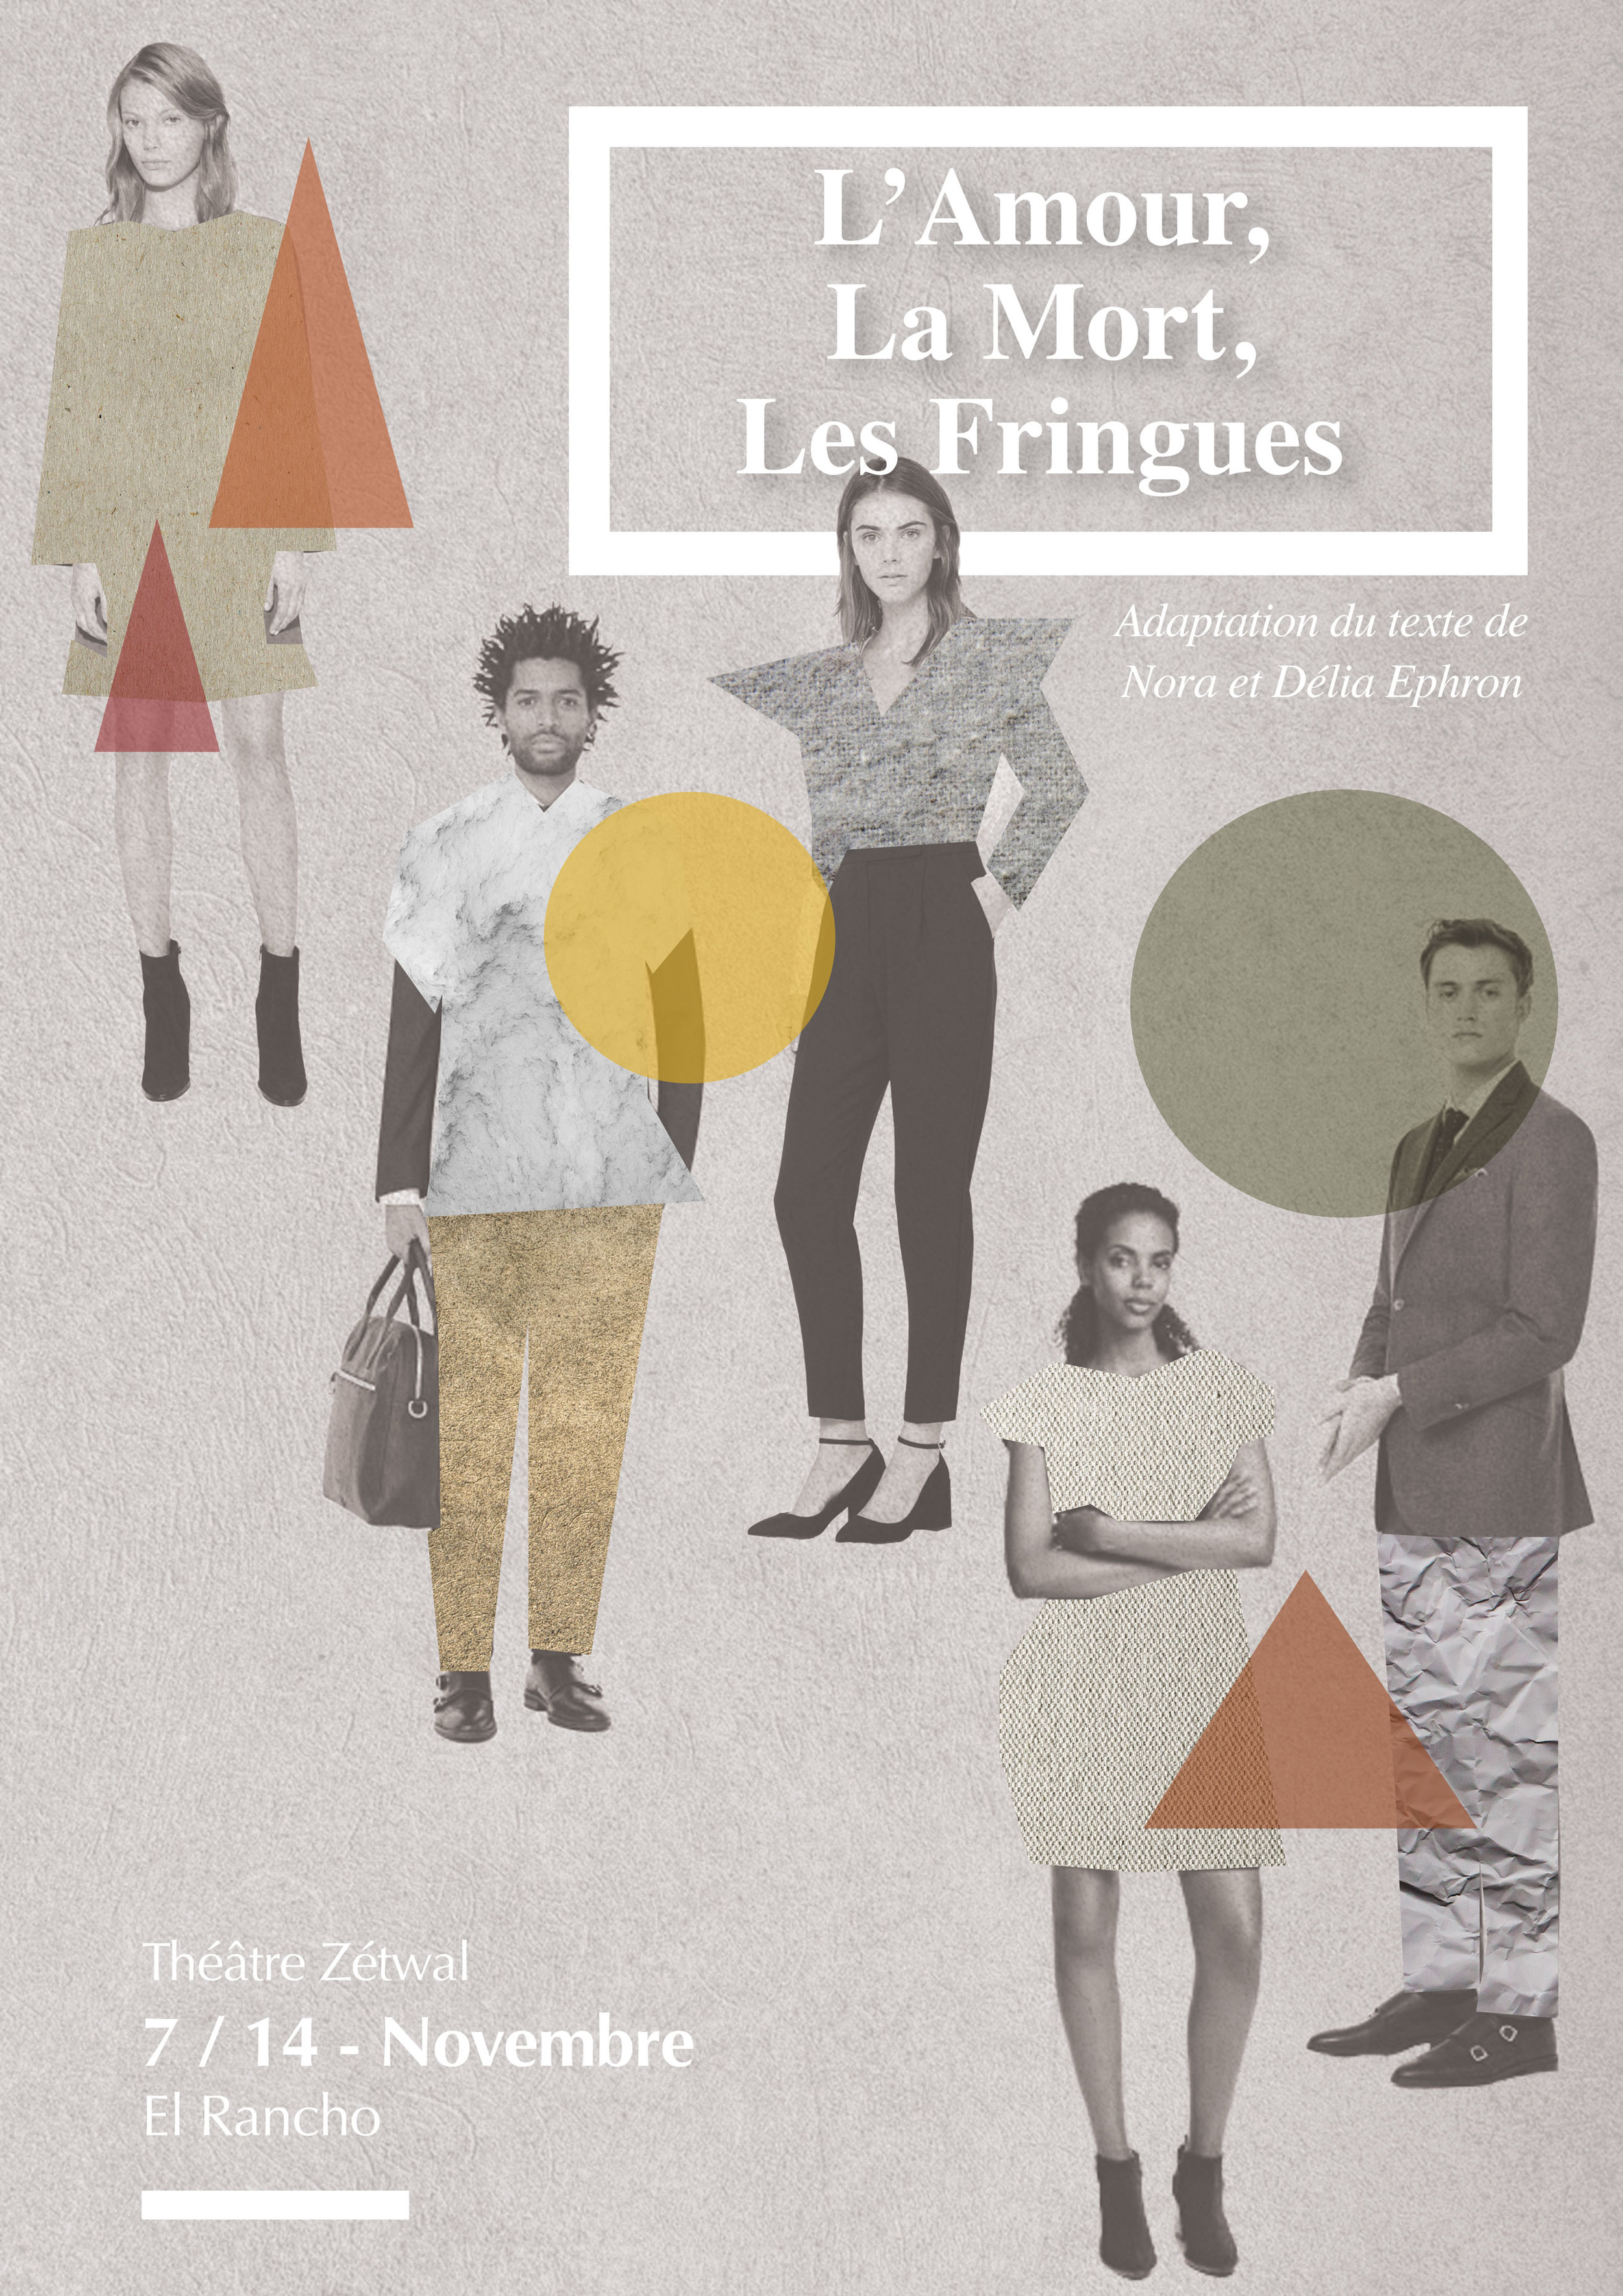 Affiches et billets pour une compagnie de théâtre Poster and tickets for theater compagny